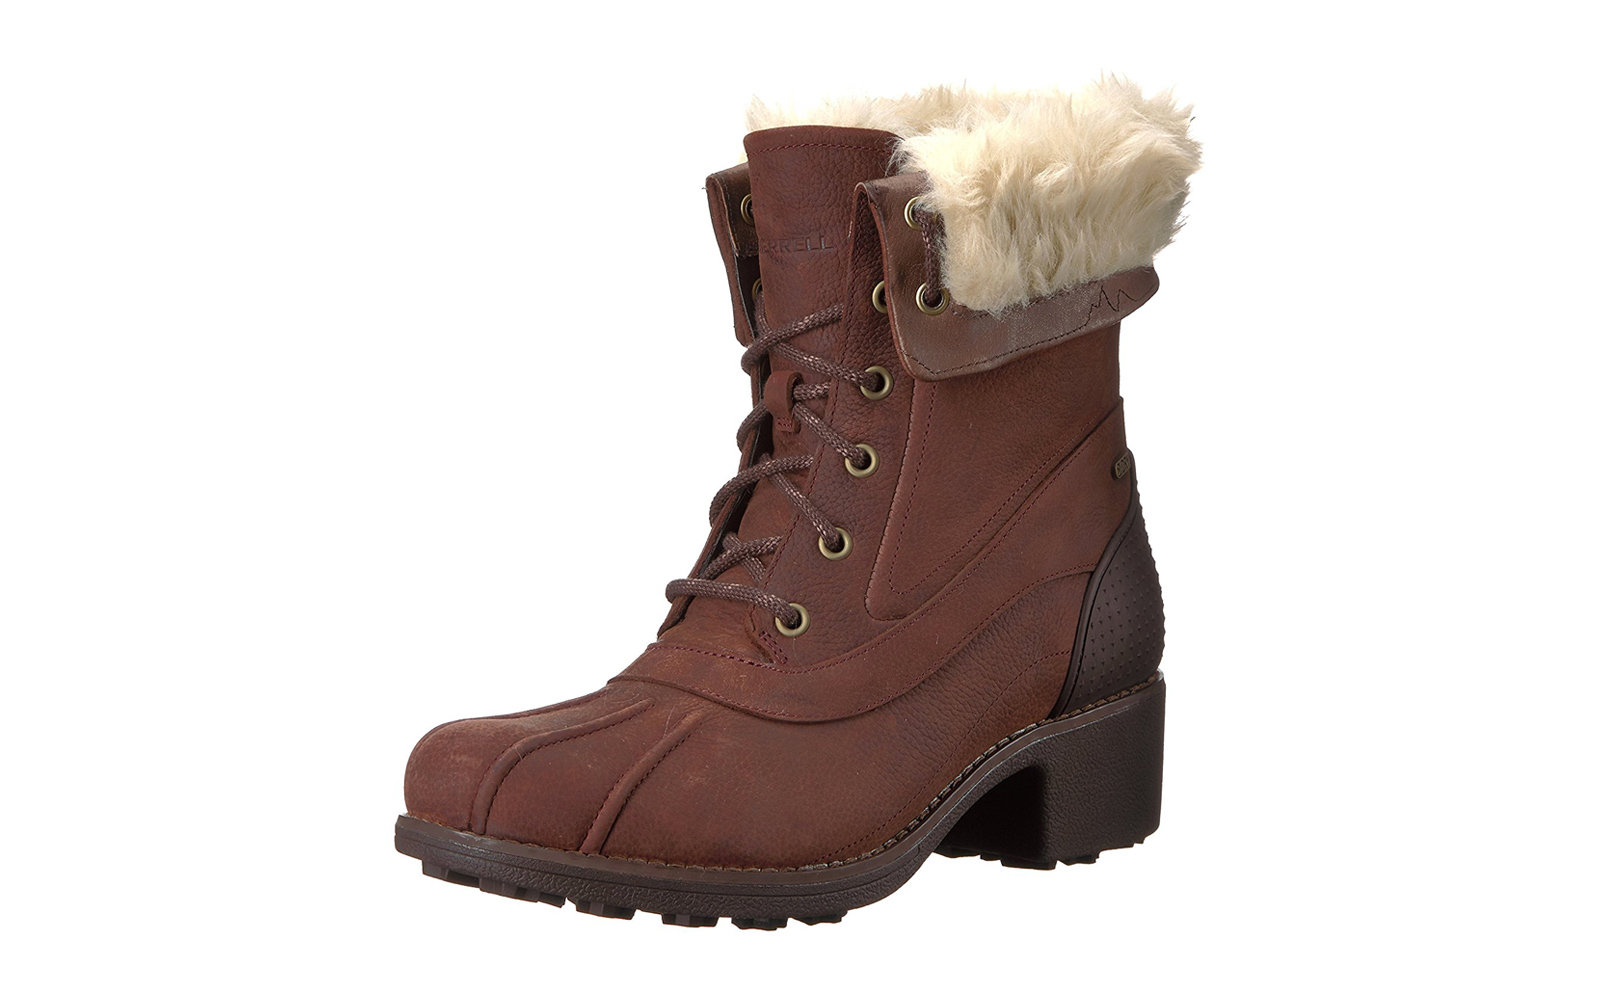 4c50d8bd1ce Merrell Chateau Mid-lace Polar Waterproof Boots  Best for Winter Business  Trips